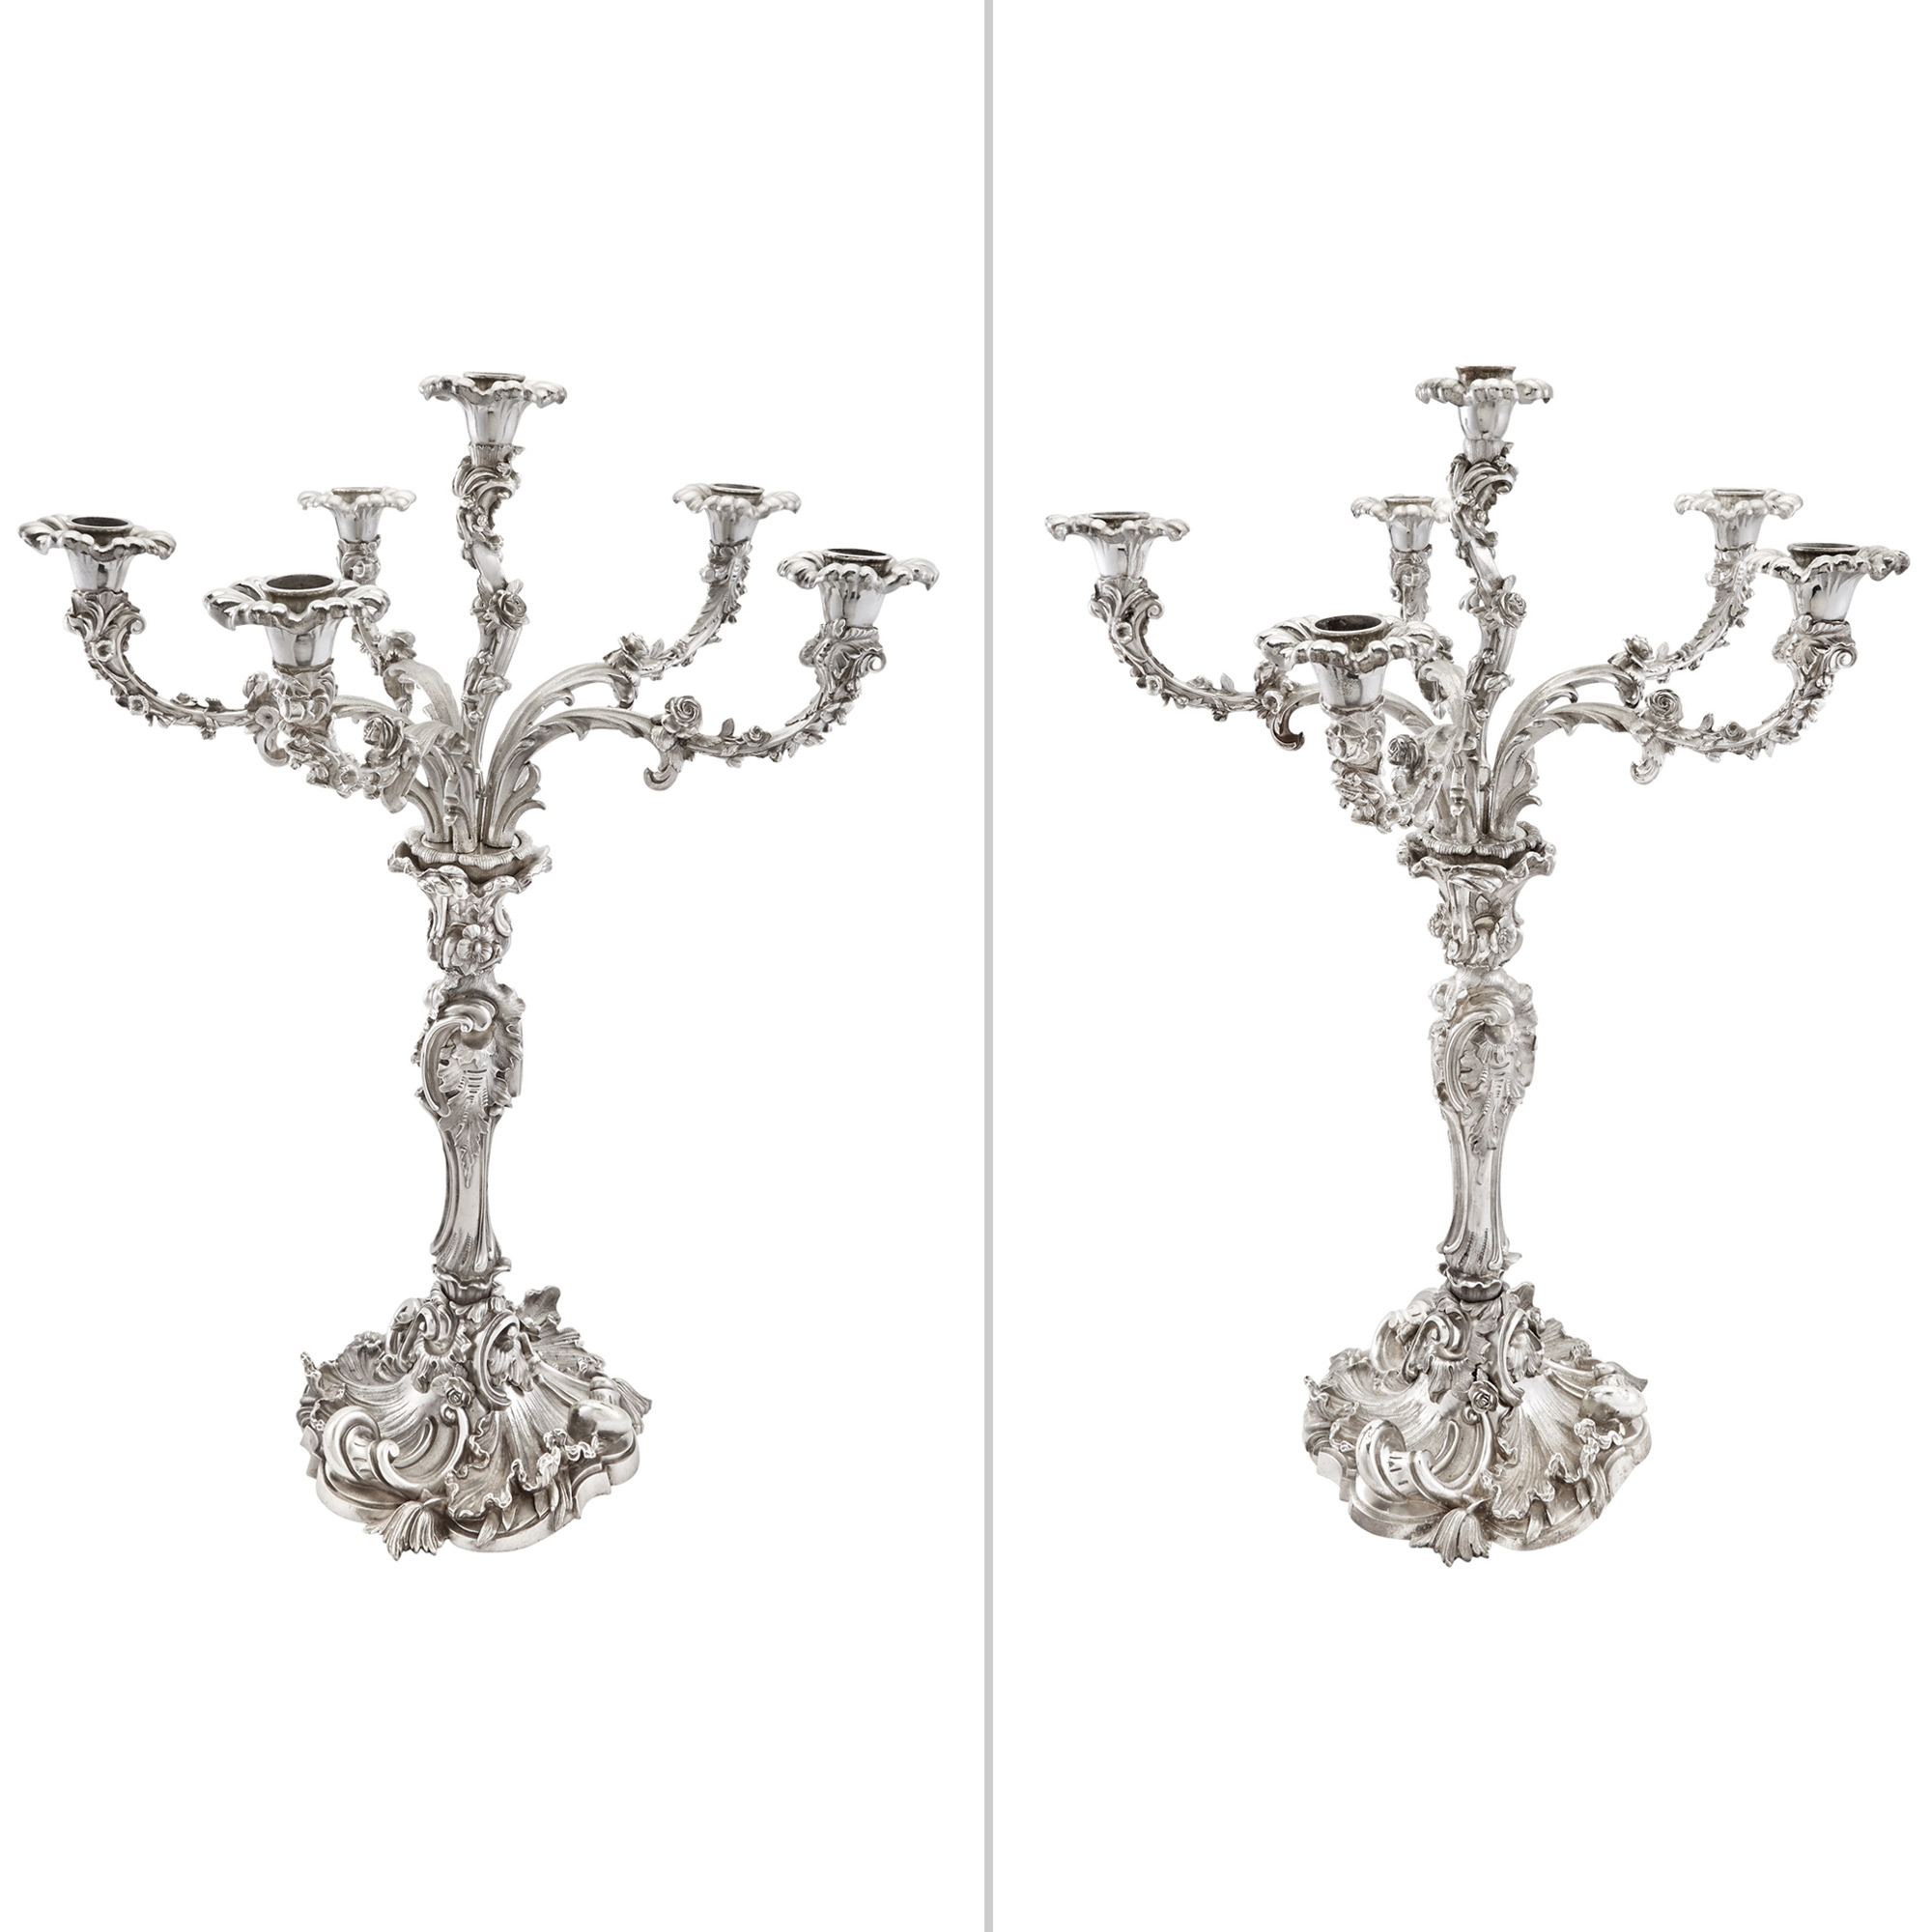 Pair Of English Silver Plated Six Light Candelabra